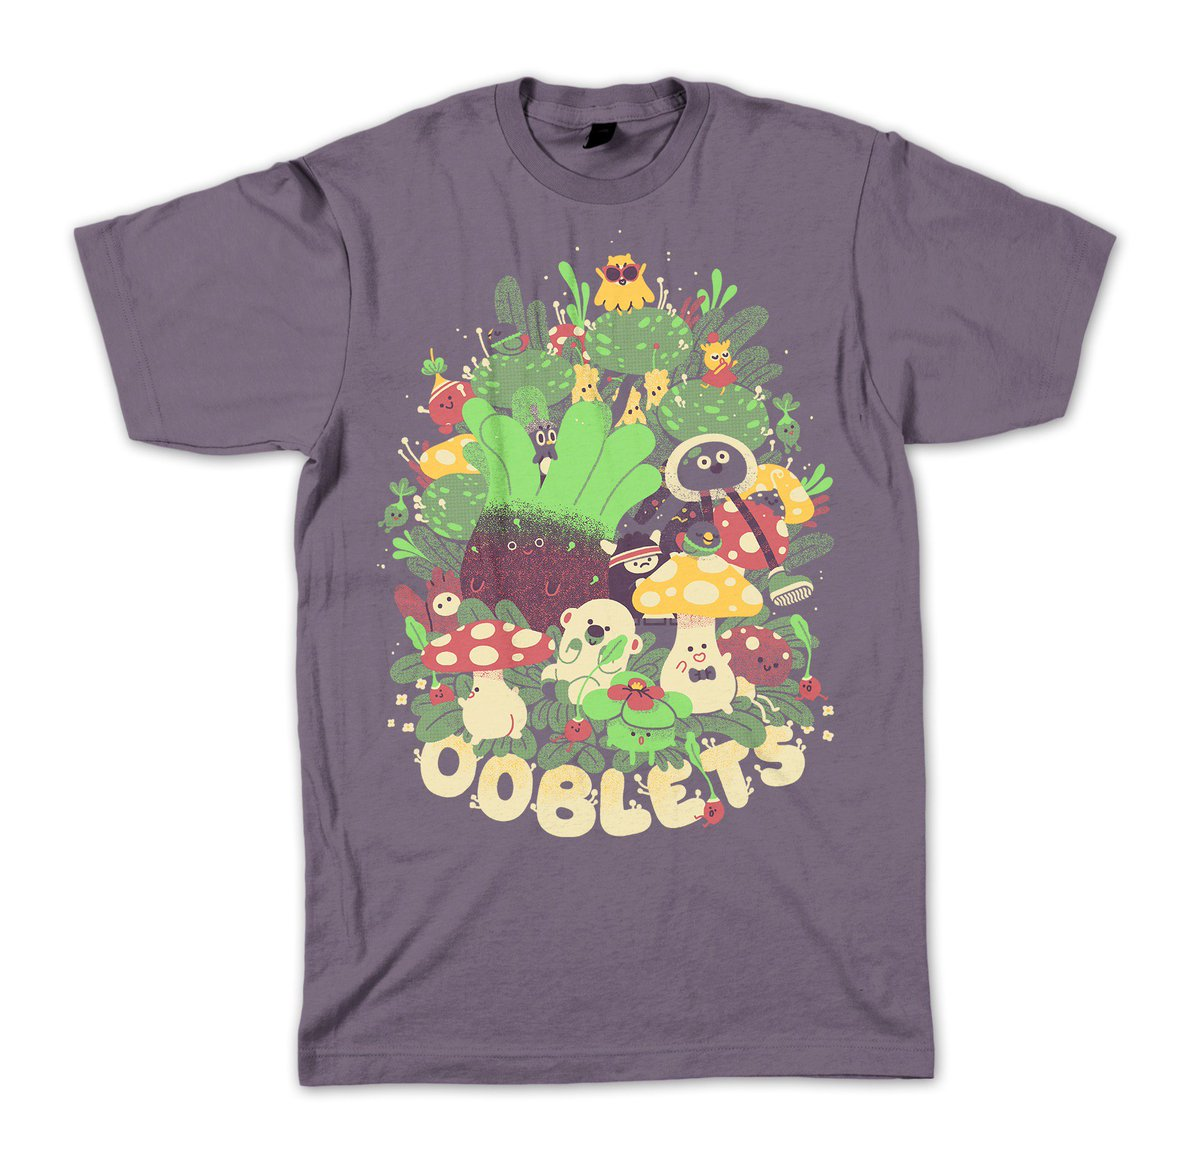 8a882a54f Ooblets on Twitter